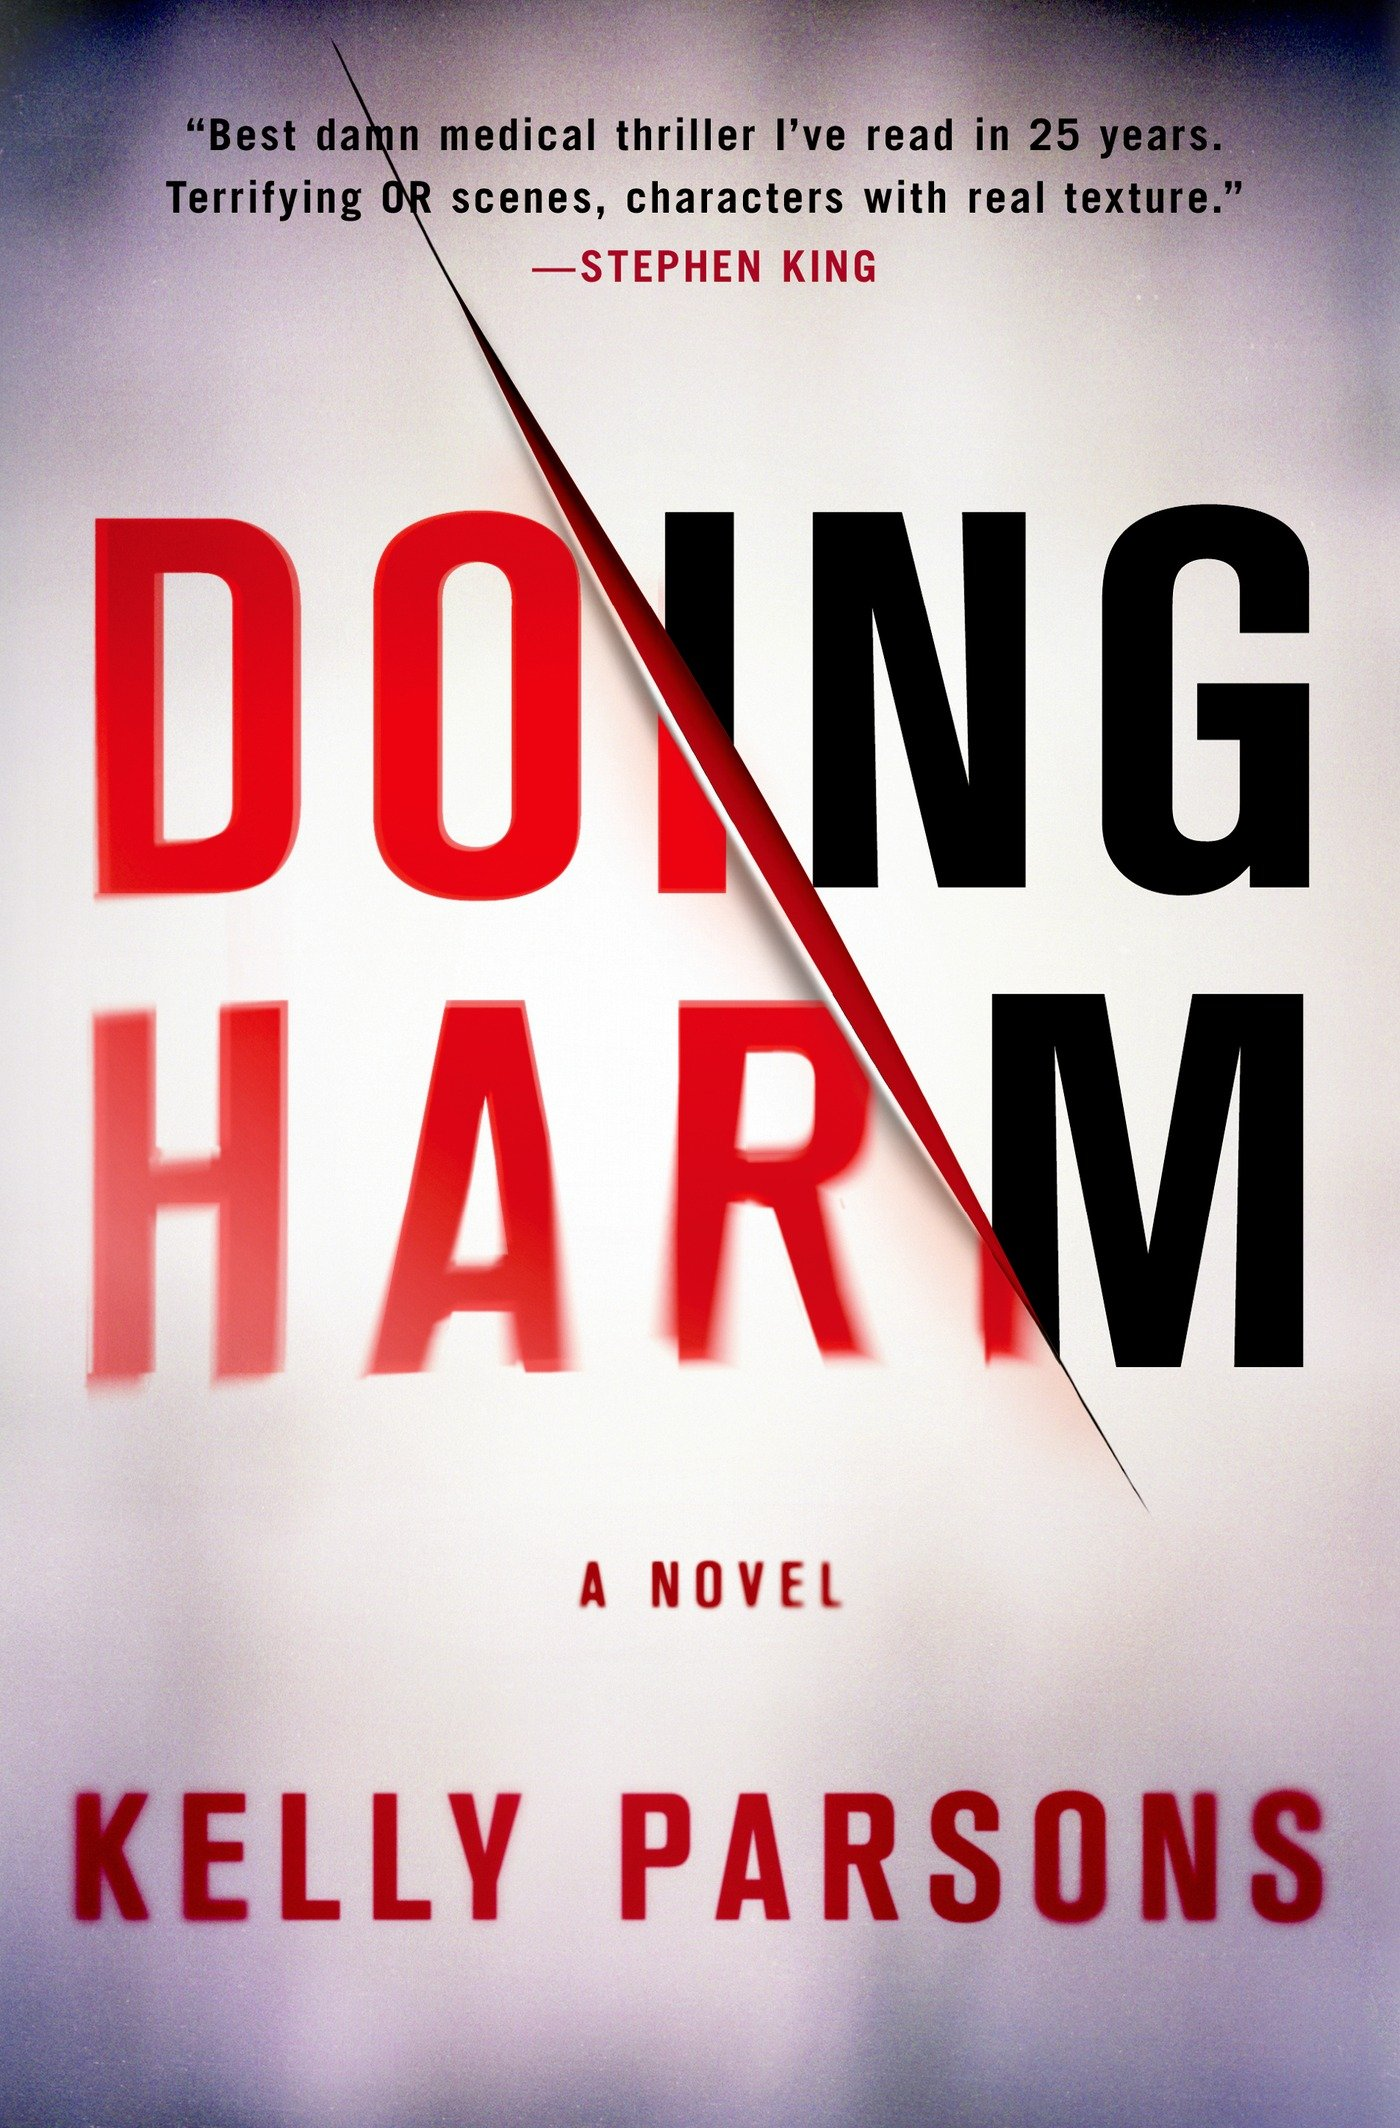 stephen king reading list - doing harm by kelly parsons | aerogramme